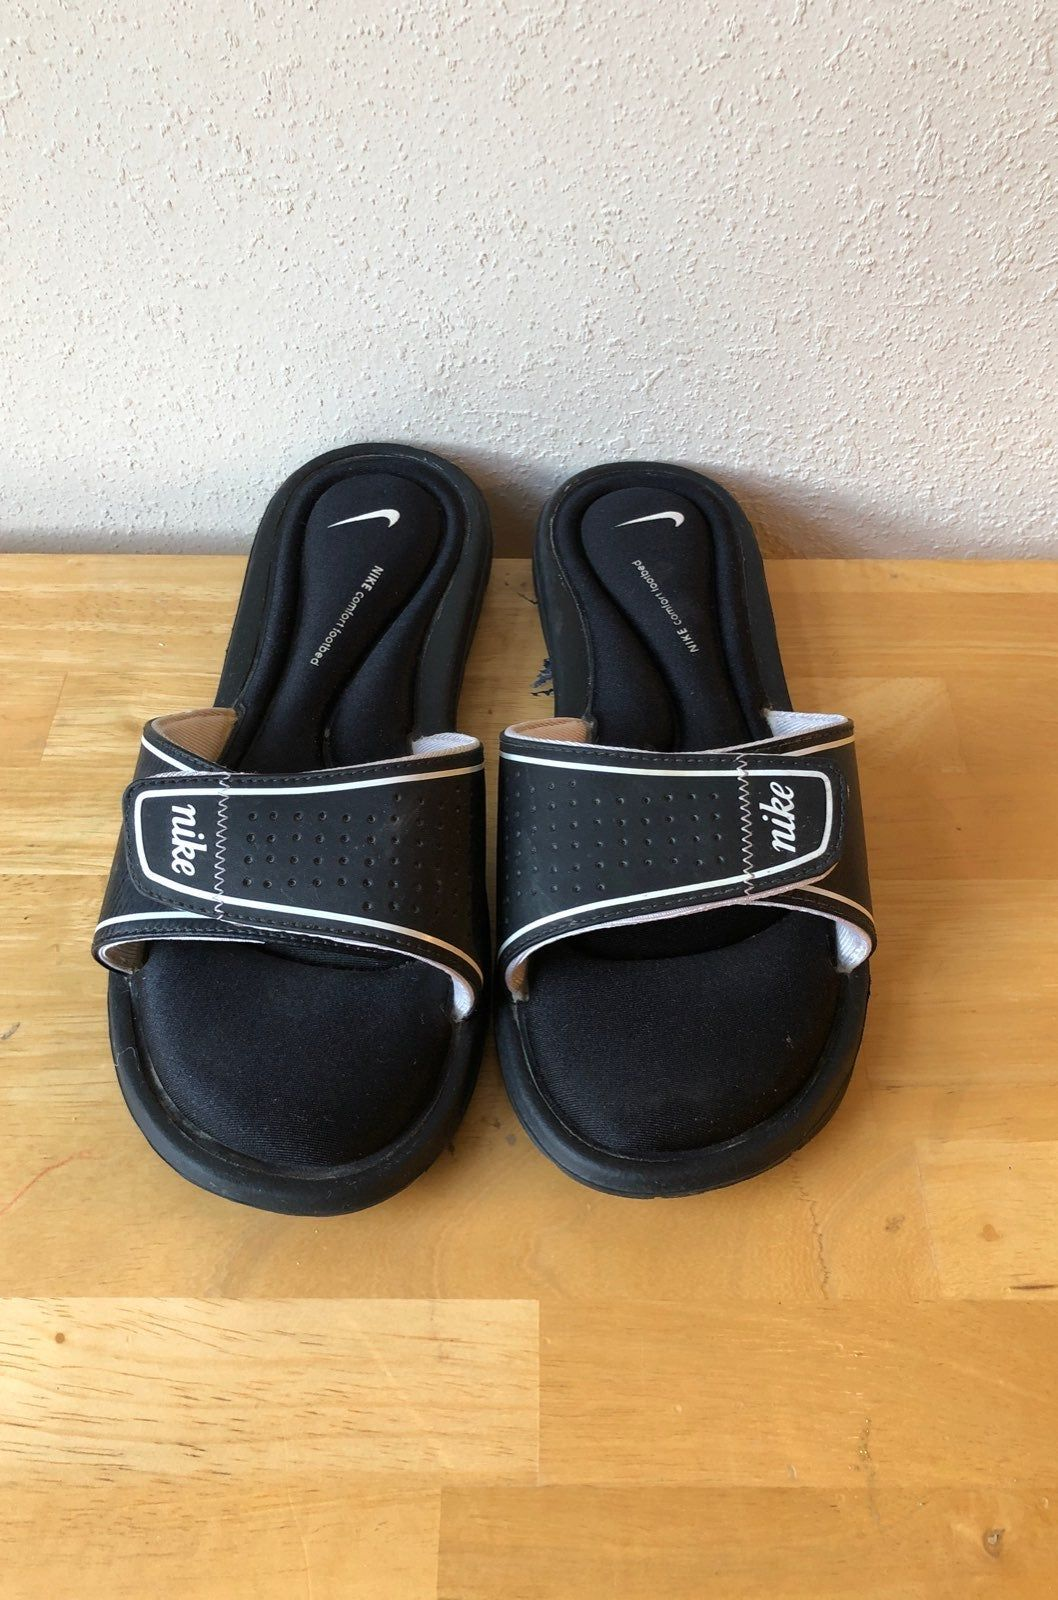 Requisitos Intercambiar Contorno  Women's size 9 Nike comfort footbed sandals. Adjustable Velcro straps. |  Nike sandals, Sandals, Buy womens shoes online